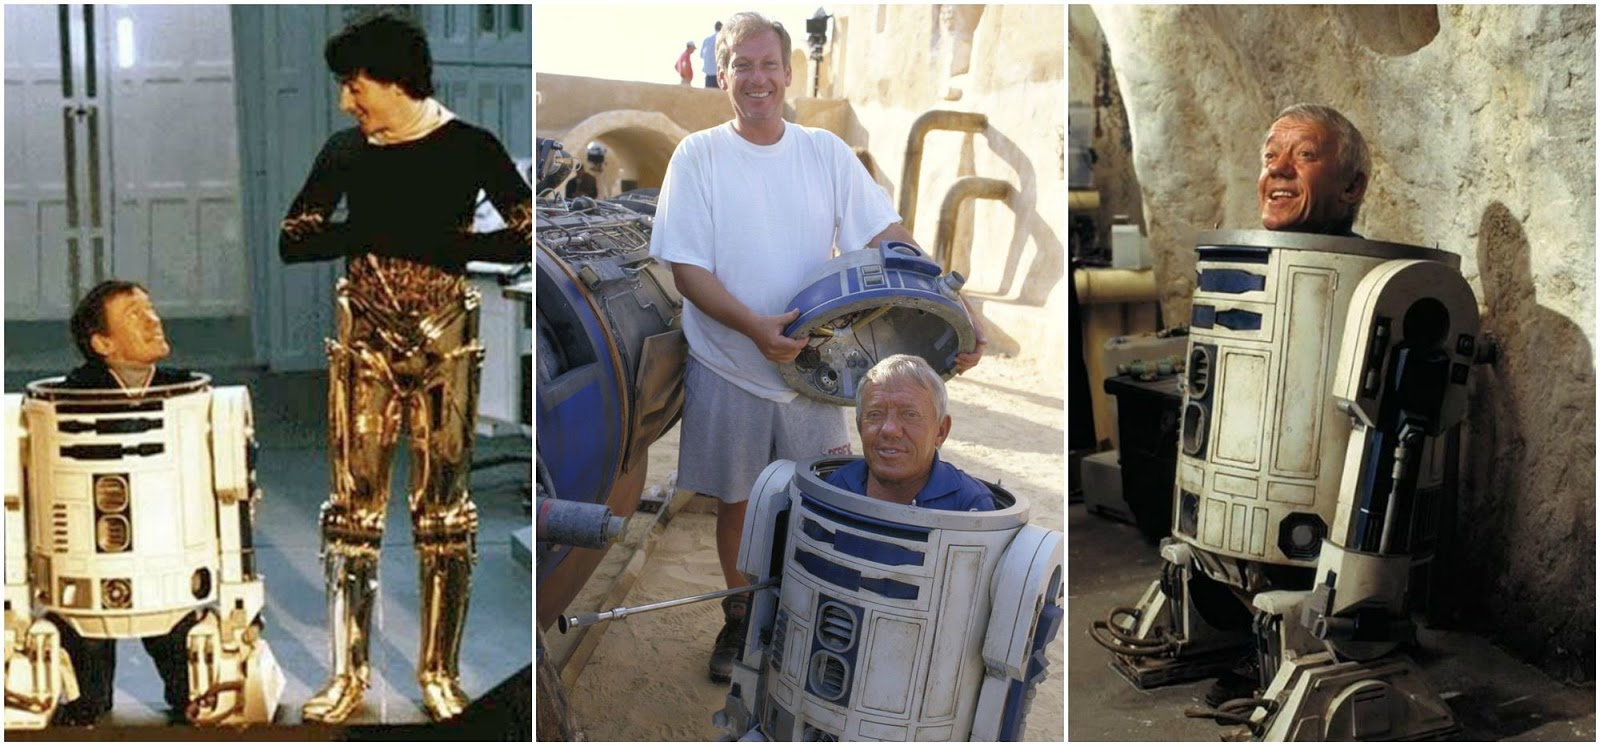 Revengeofthe5th.net: ROT5 Mourns the Death of R2-D2 Actor ...